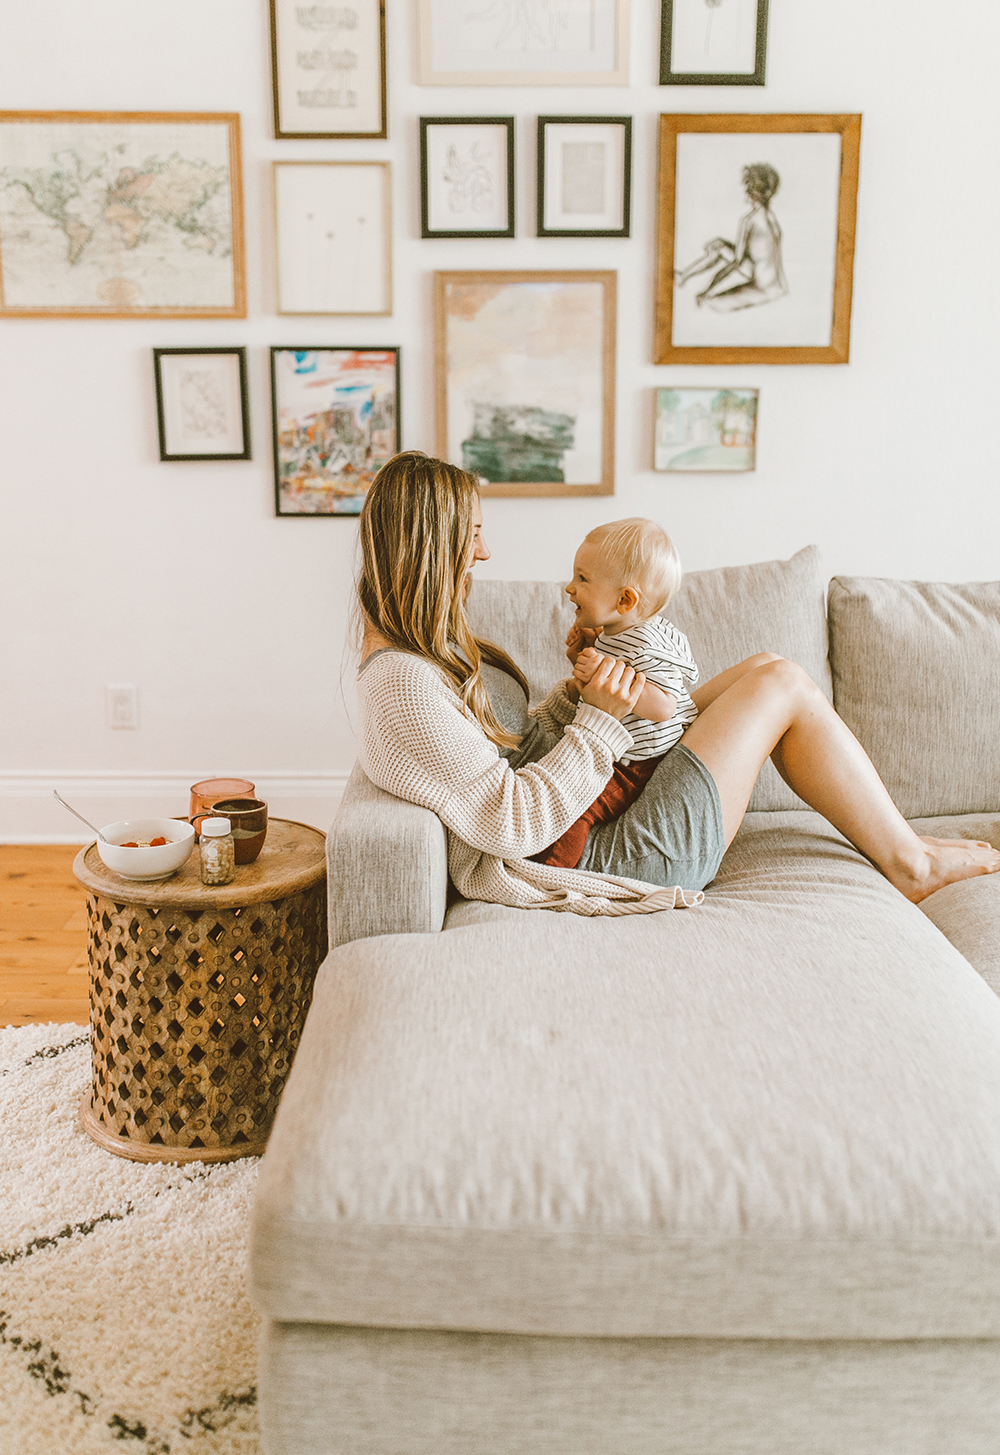 livvyland-blog-olivia-watson-austin-texas-lifestyle-mom-motherhood-blogger-ritual-prenatal-vitamin-7